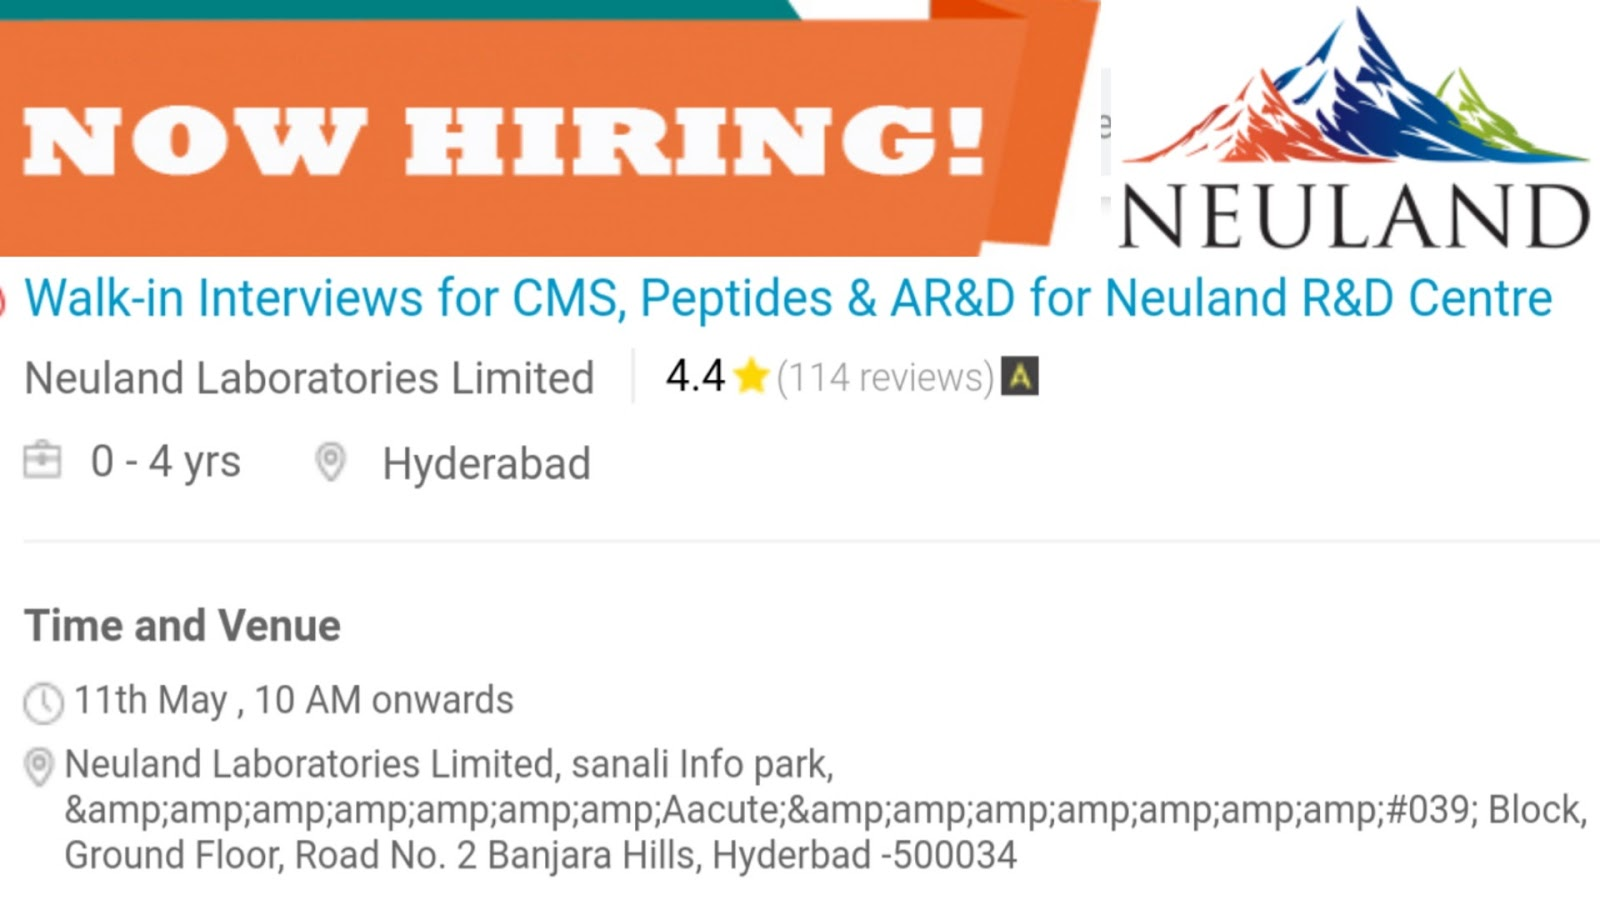 Walk-in Interview For AR&D